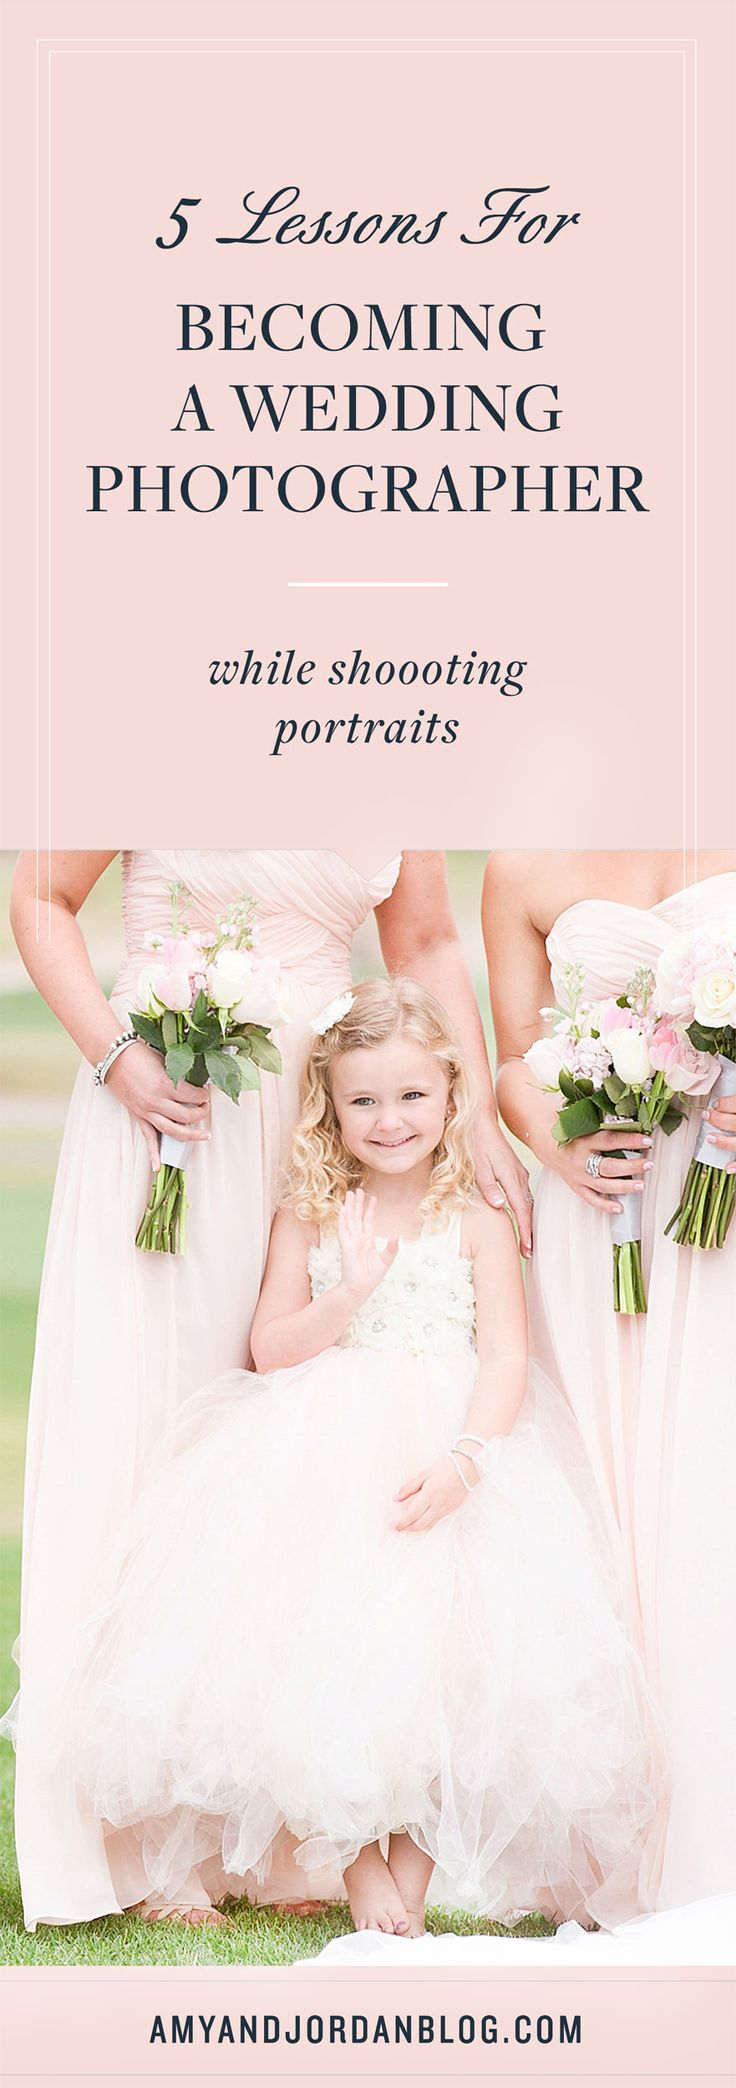 5 reasons shooting portraits made us better wedding photographers and why you shouldn't feel insecure if you're not always photographing your dream job.